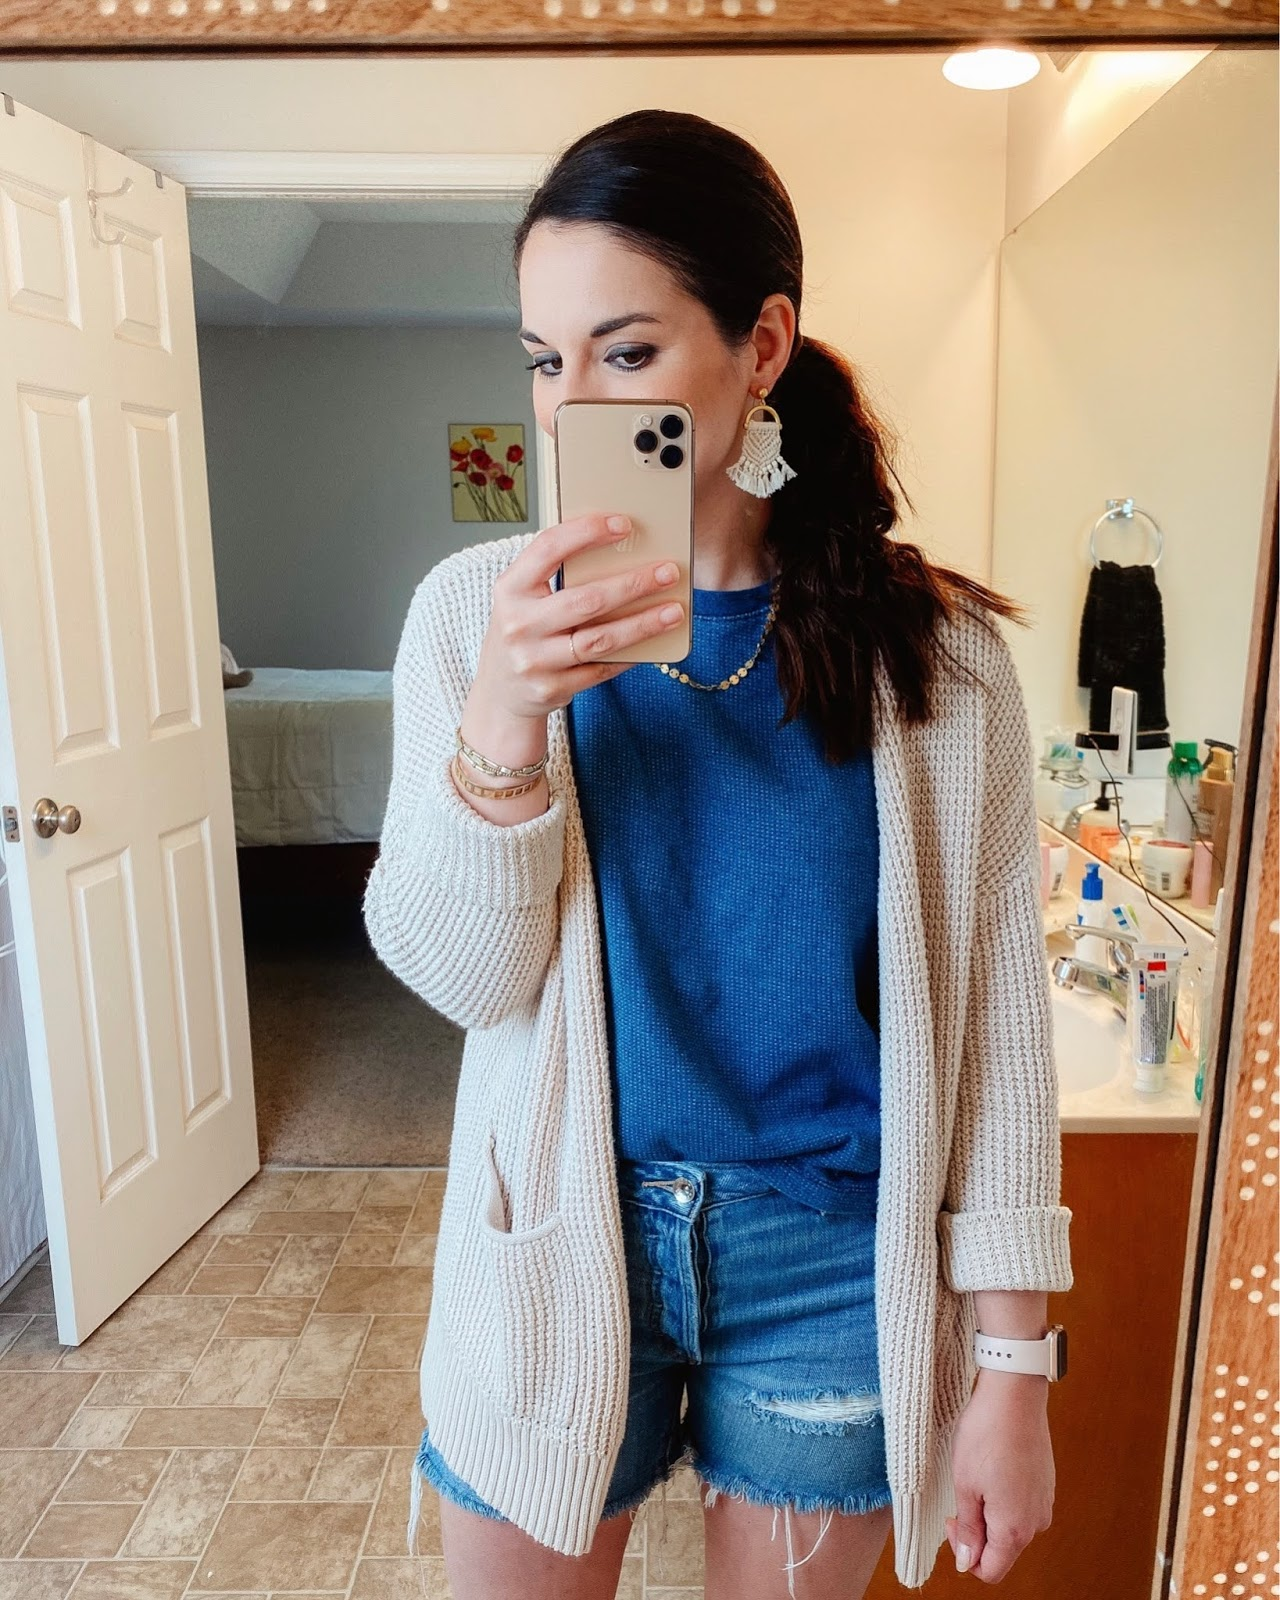 instagram roundup, nc blogger, north carolina blogger, spring style, spring outfits, what to wear for spring